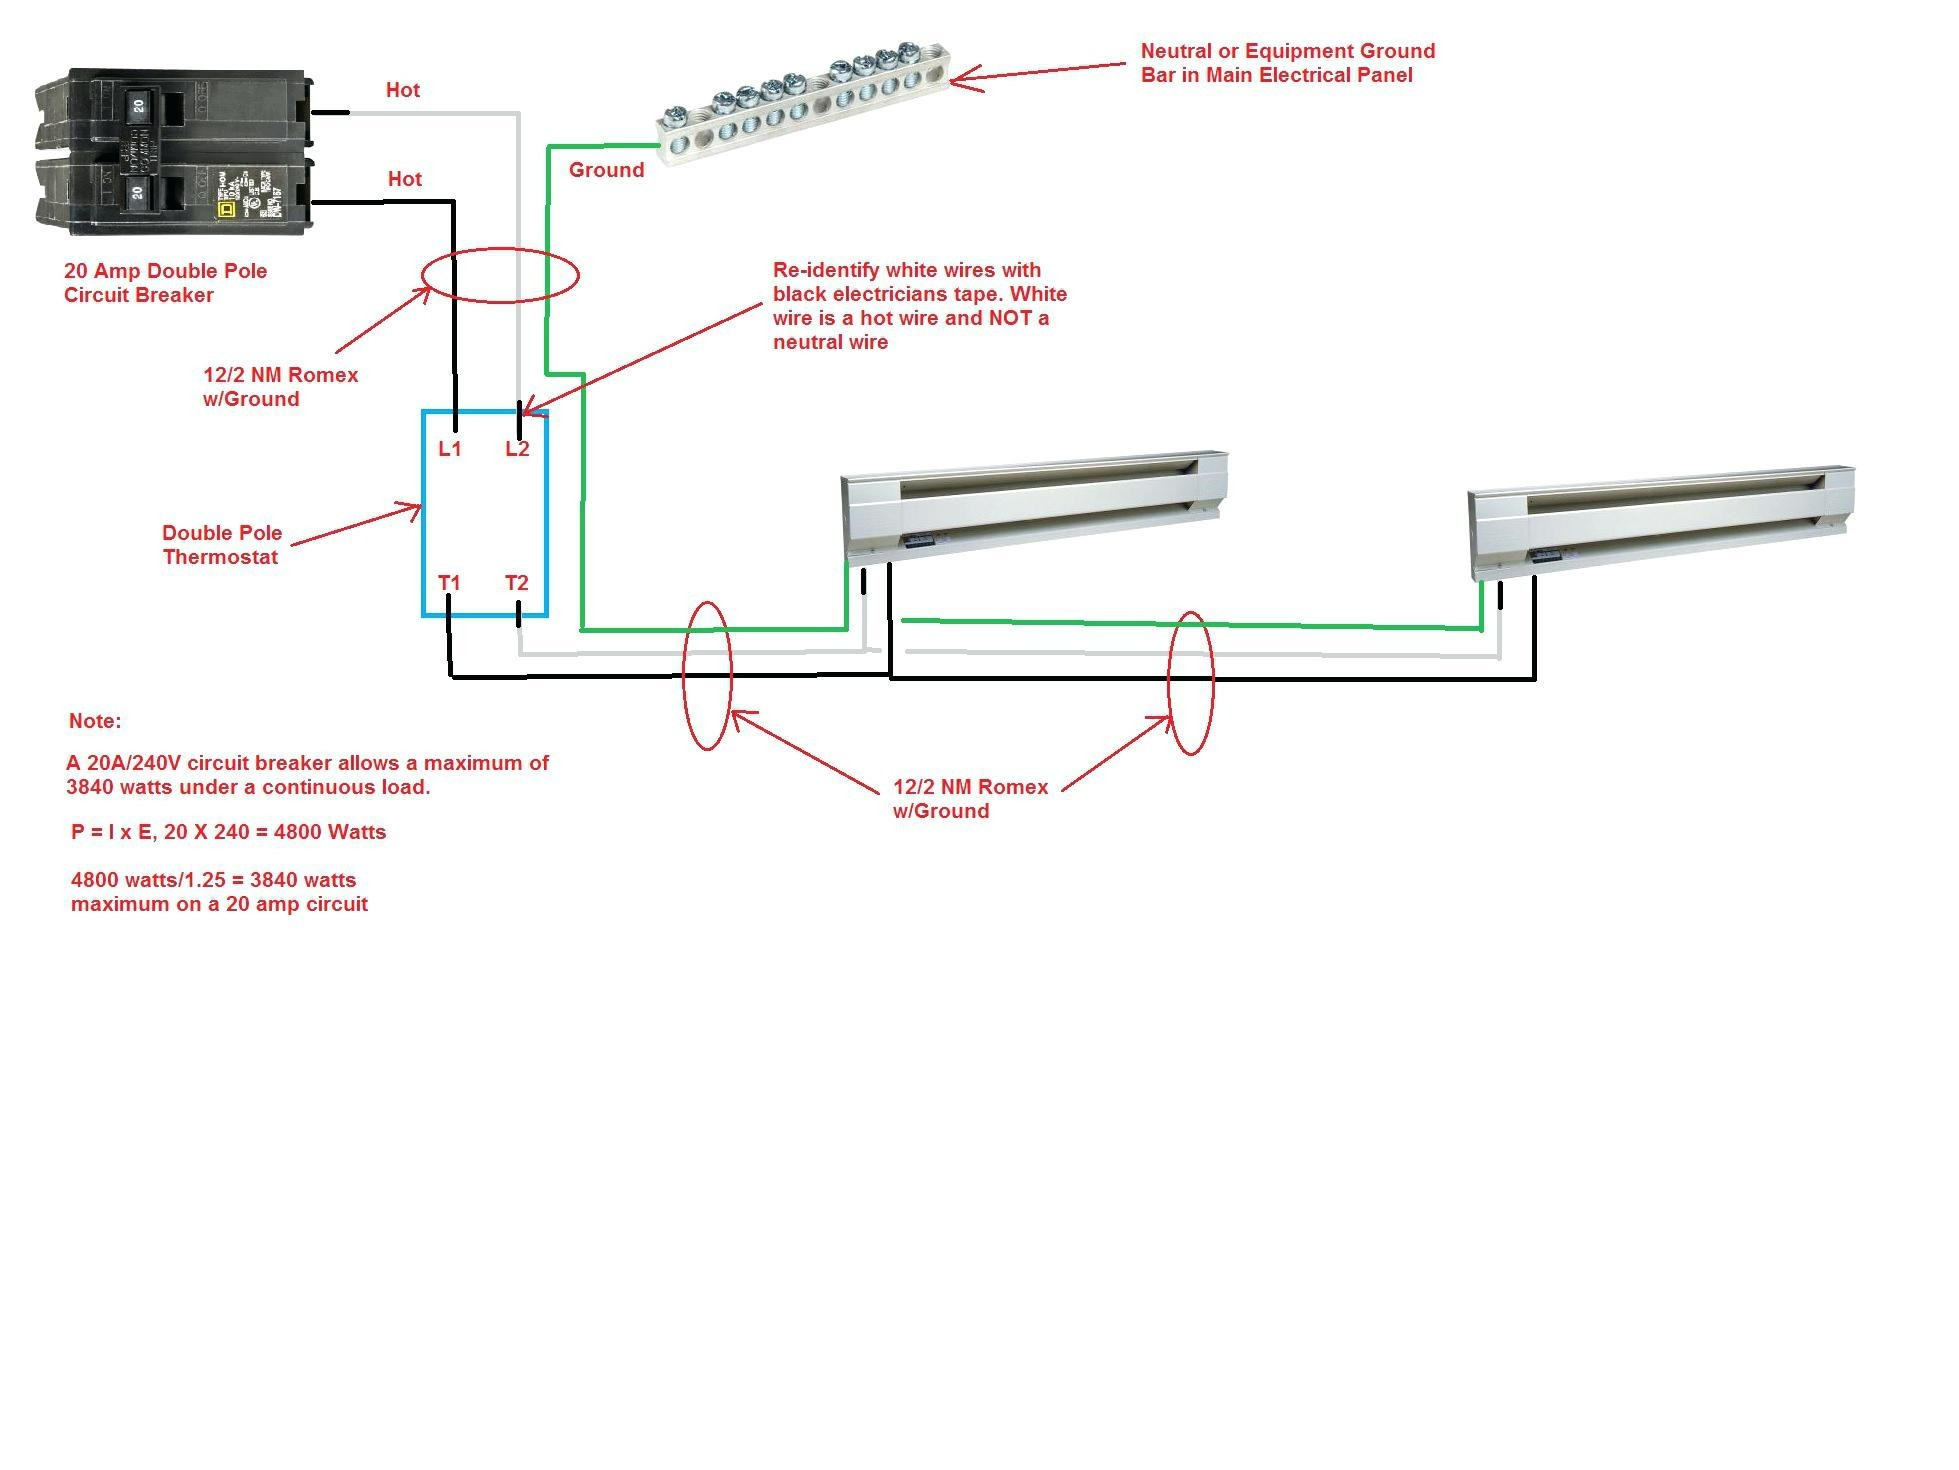 baseboard heater thermostat wiring diagram Download-Wiring Diagram 240v Baseboard Heater Thermostat Best Bright 220v 19-k